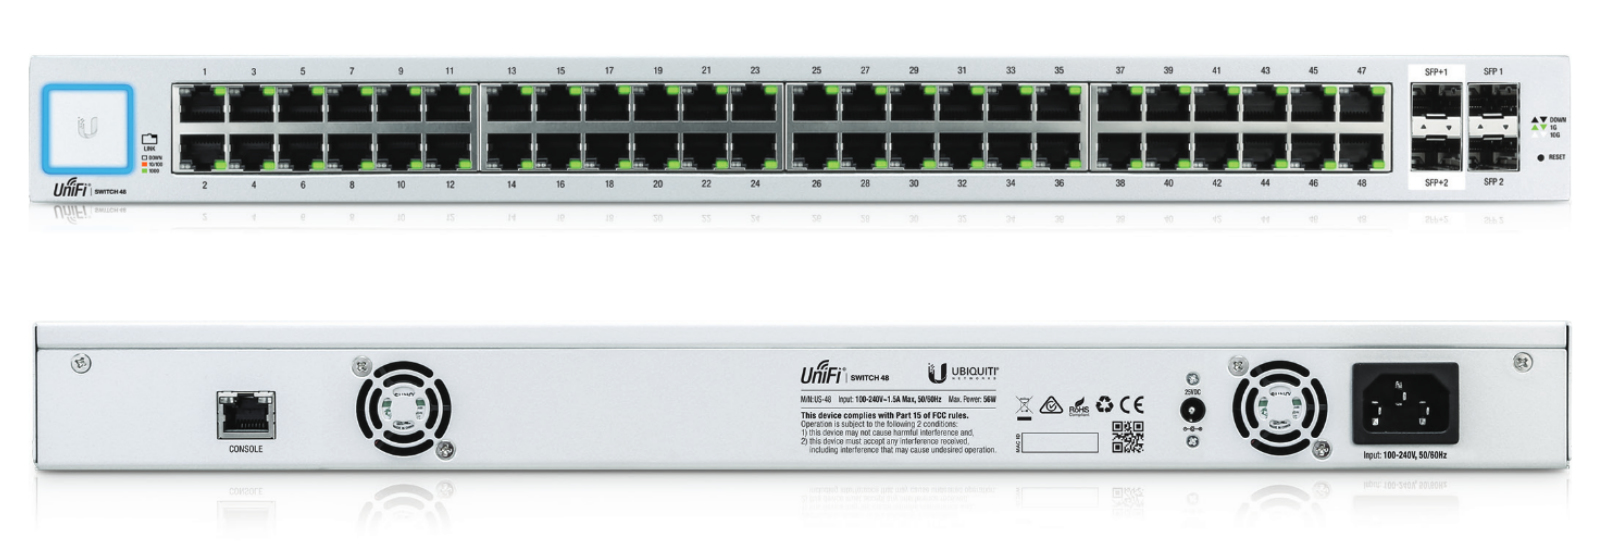 Ubiquiti Networks UniFi US-48 Managed Gigabit Ethernet (10/100/1000) 1U Silver,White network switch